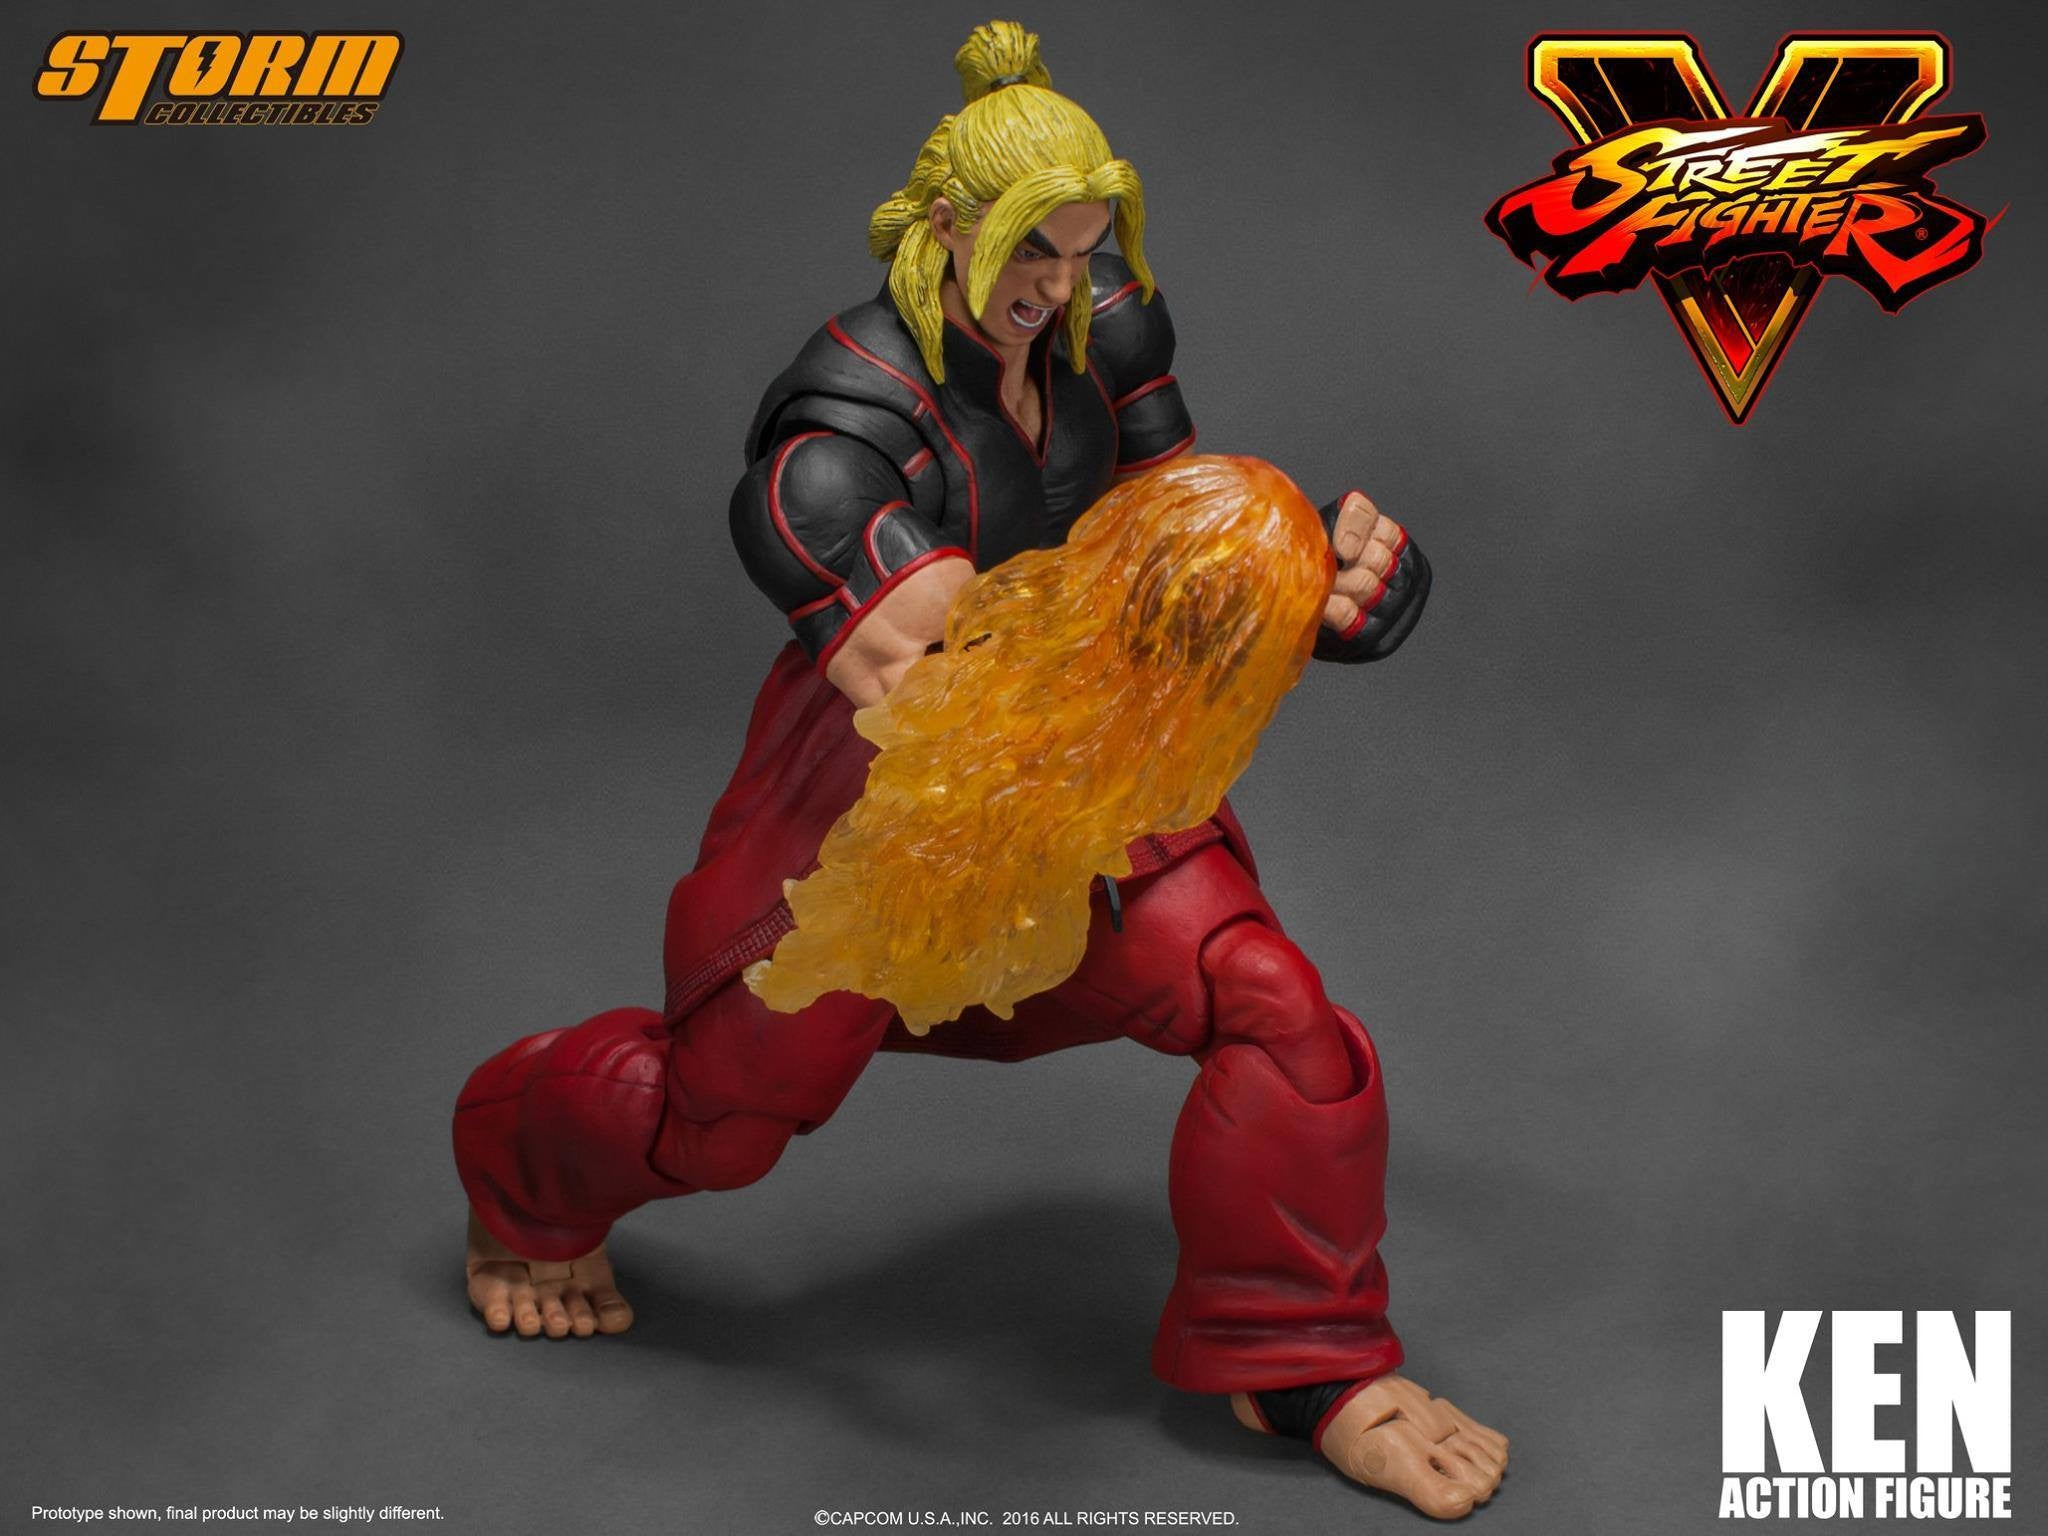 Storm Collectibles - 1:12 Scale Action Figure - Street Fighter V - Ken - Marvelous Toys - 3